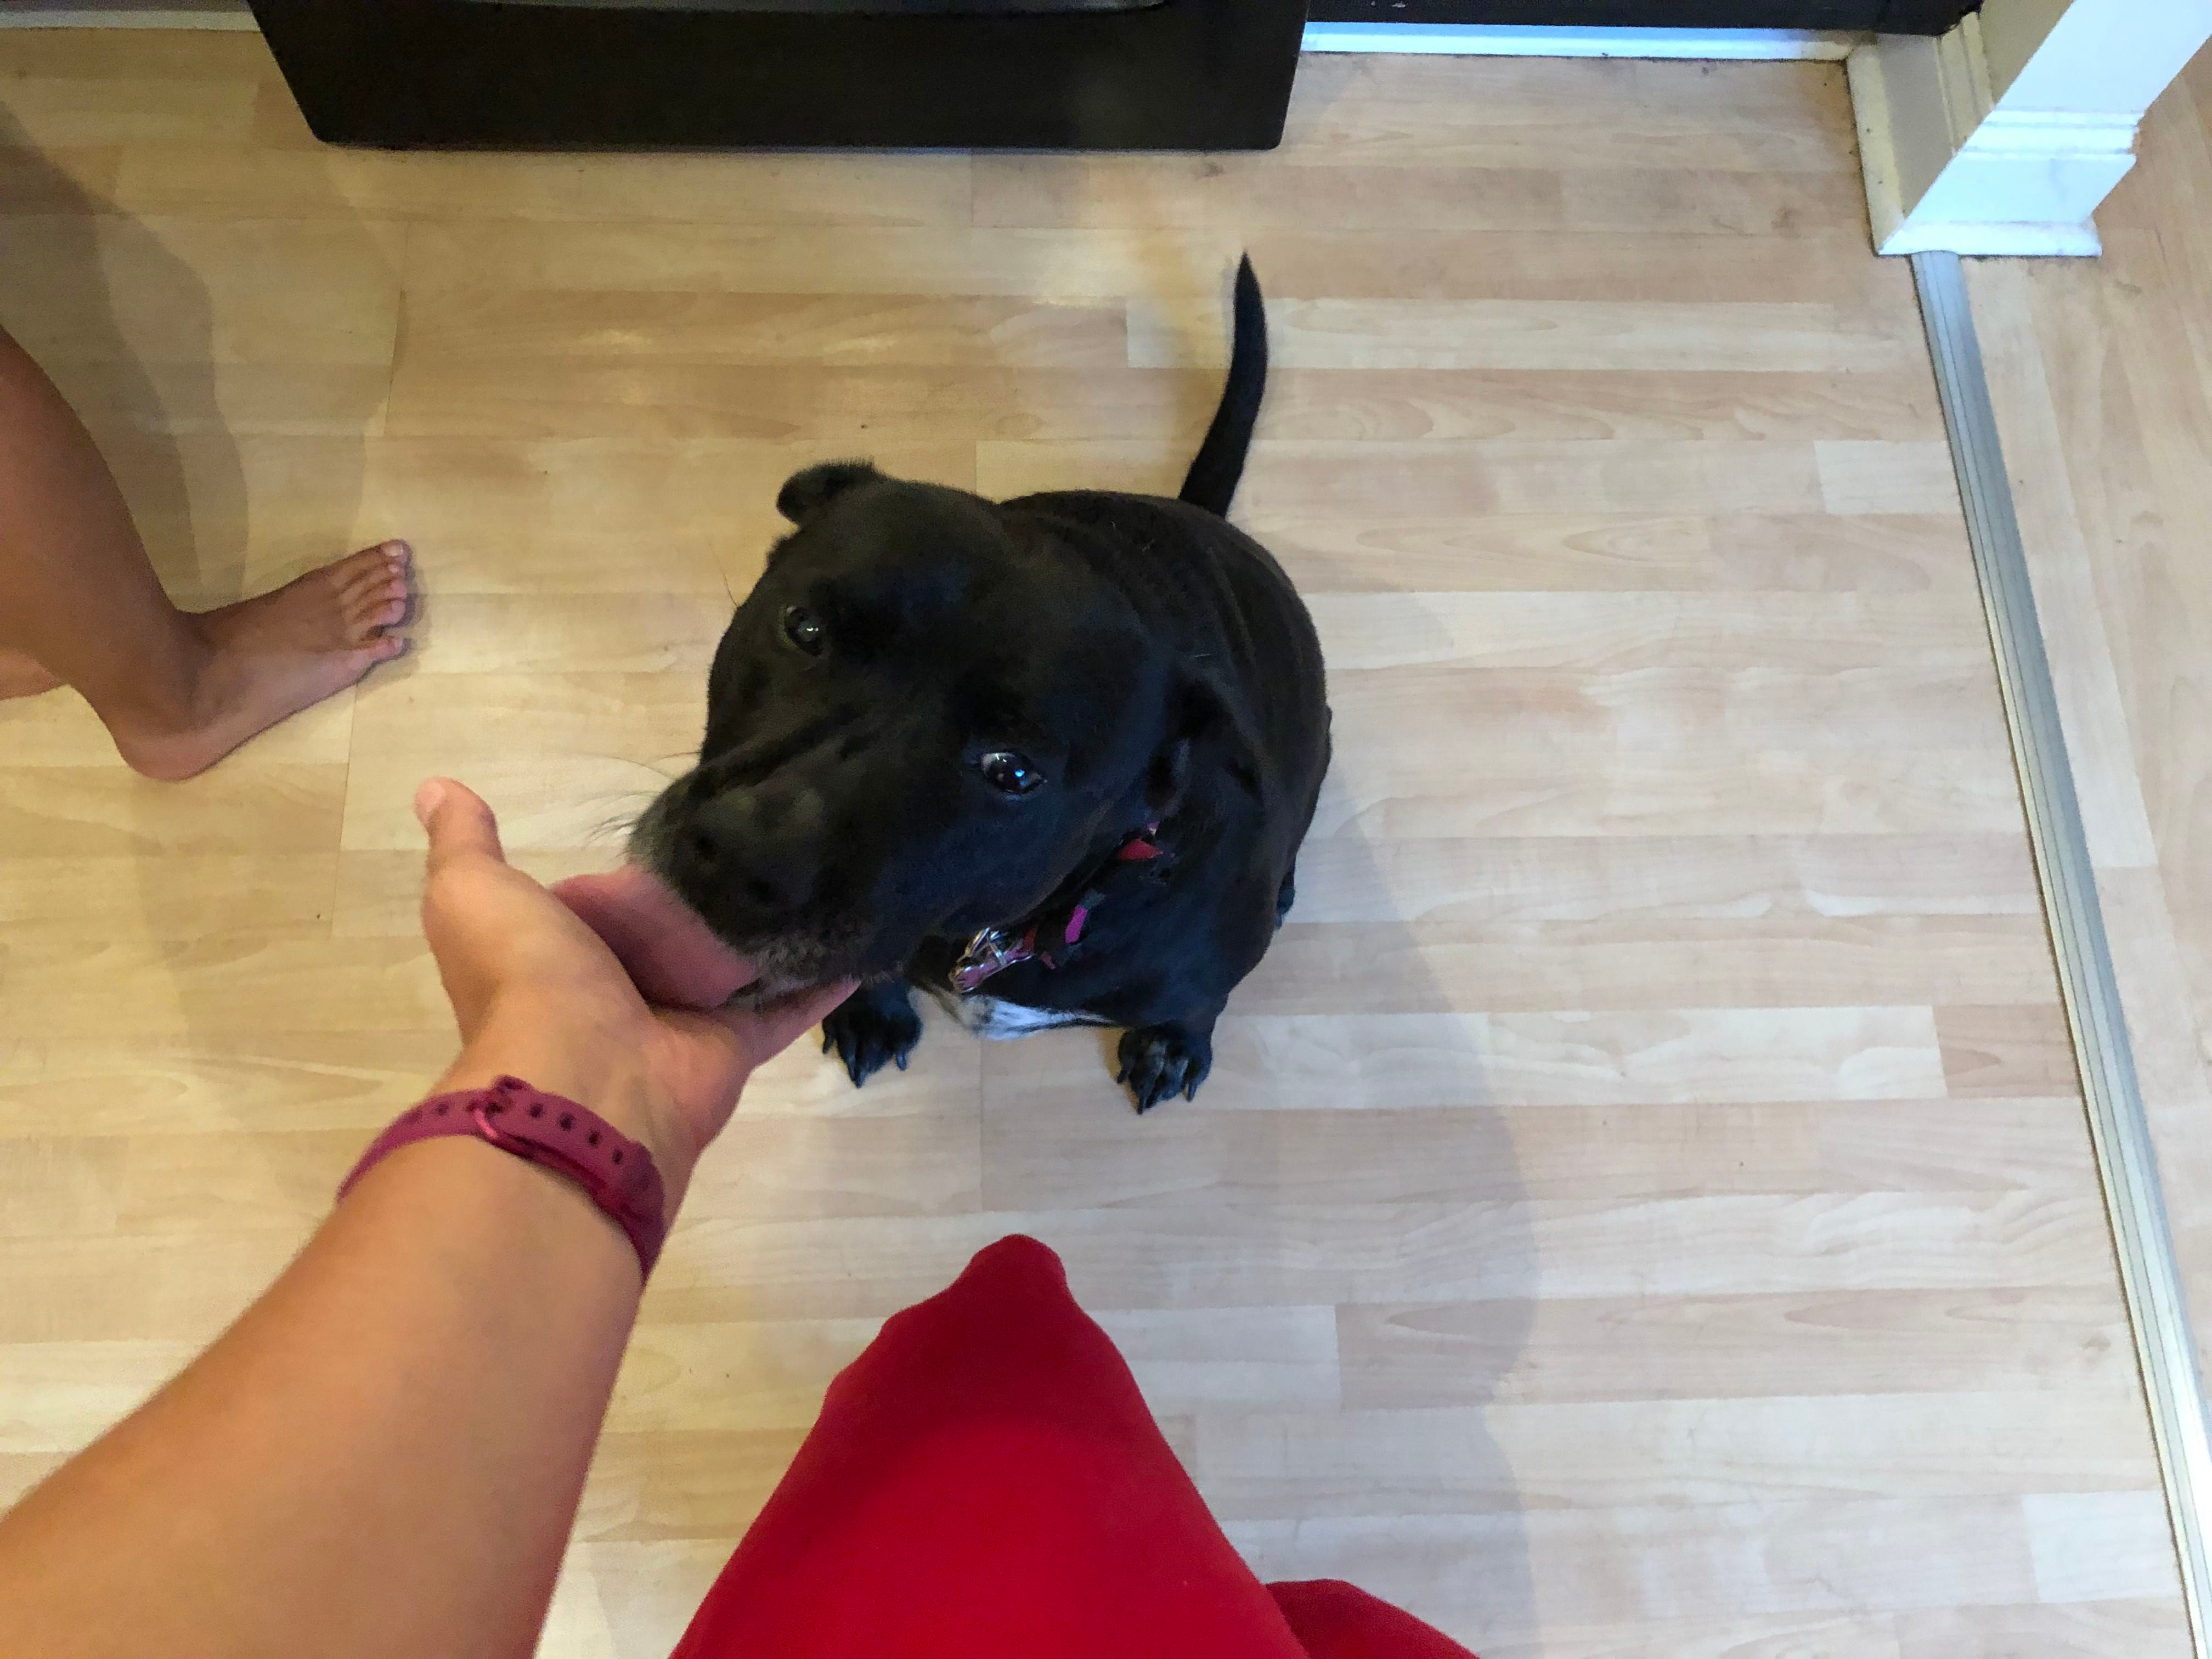 Black dog licking a person's hand